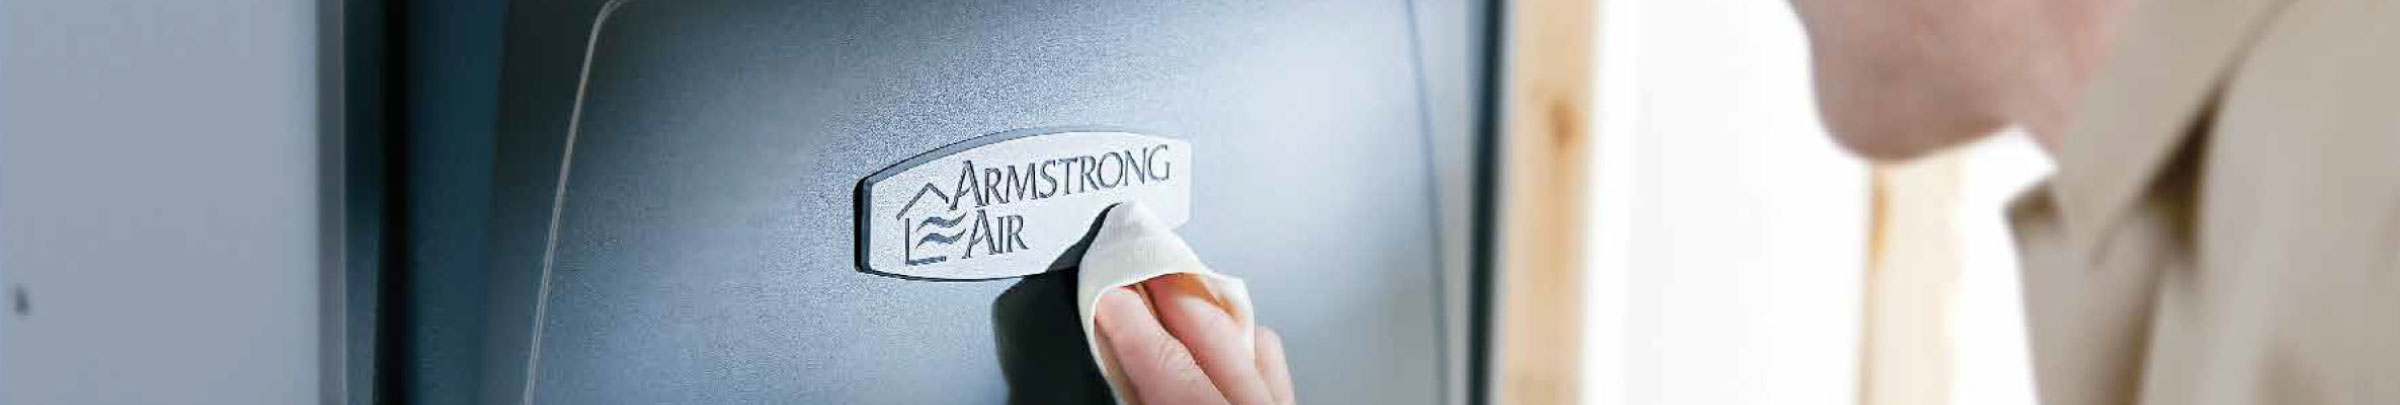 Armstrong Air Furnaces are reliable and efficient heating systems. Call us today for your estimate or for any service you need!